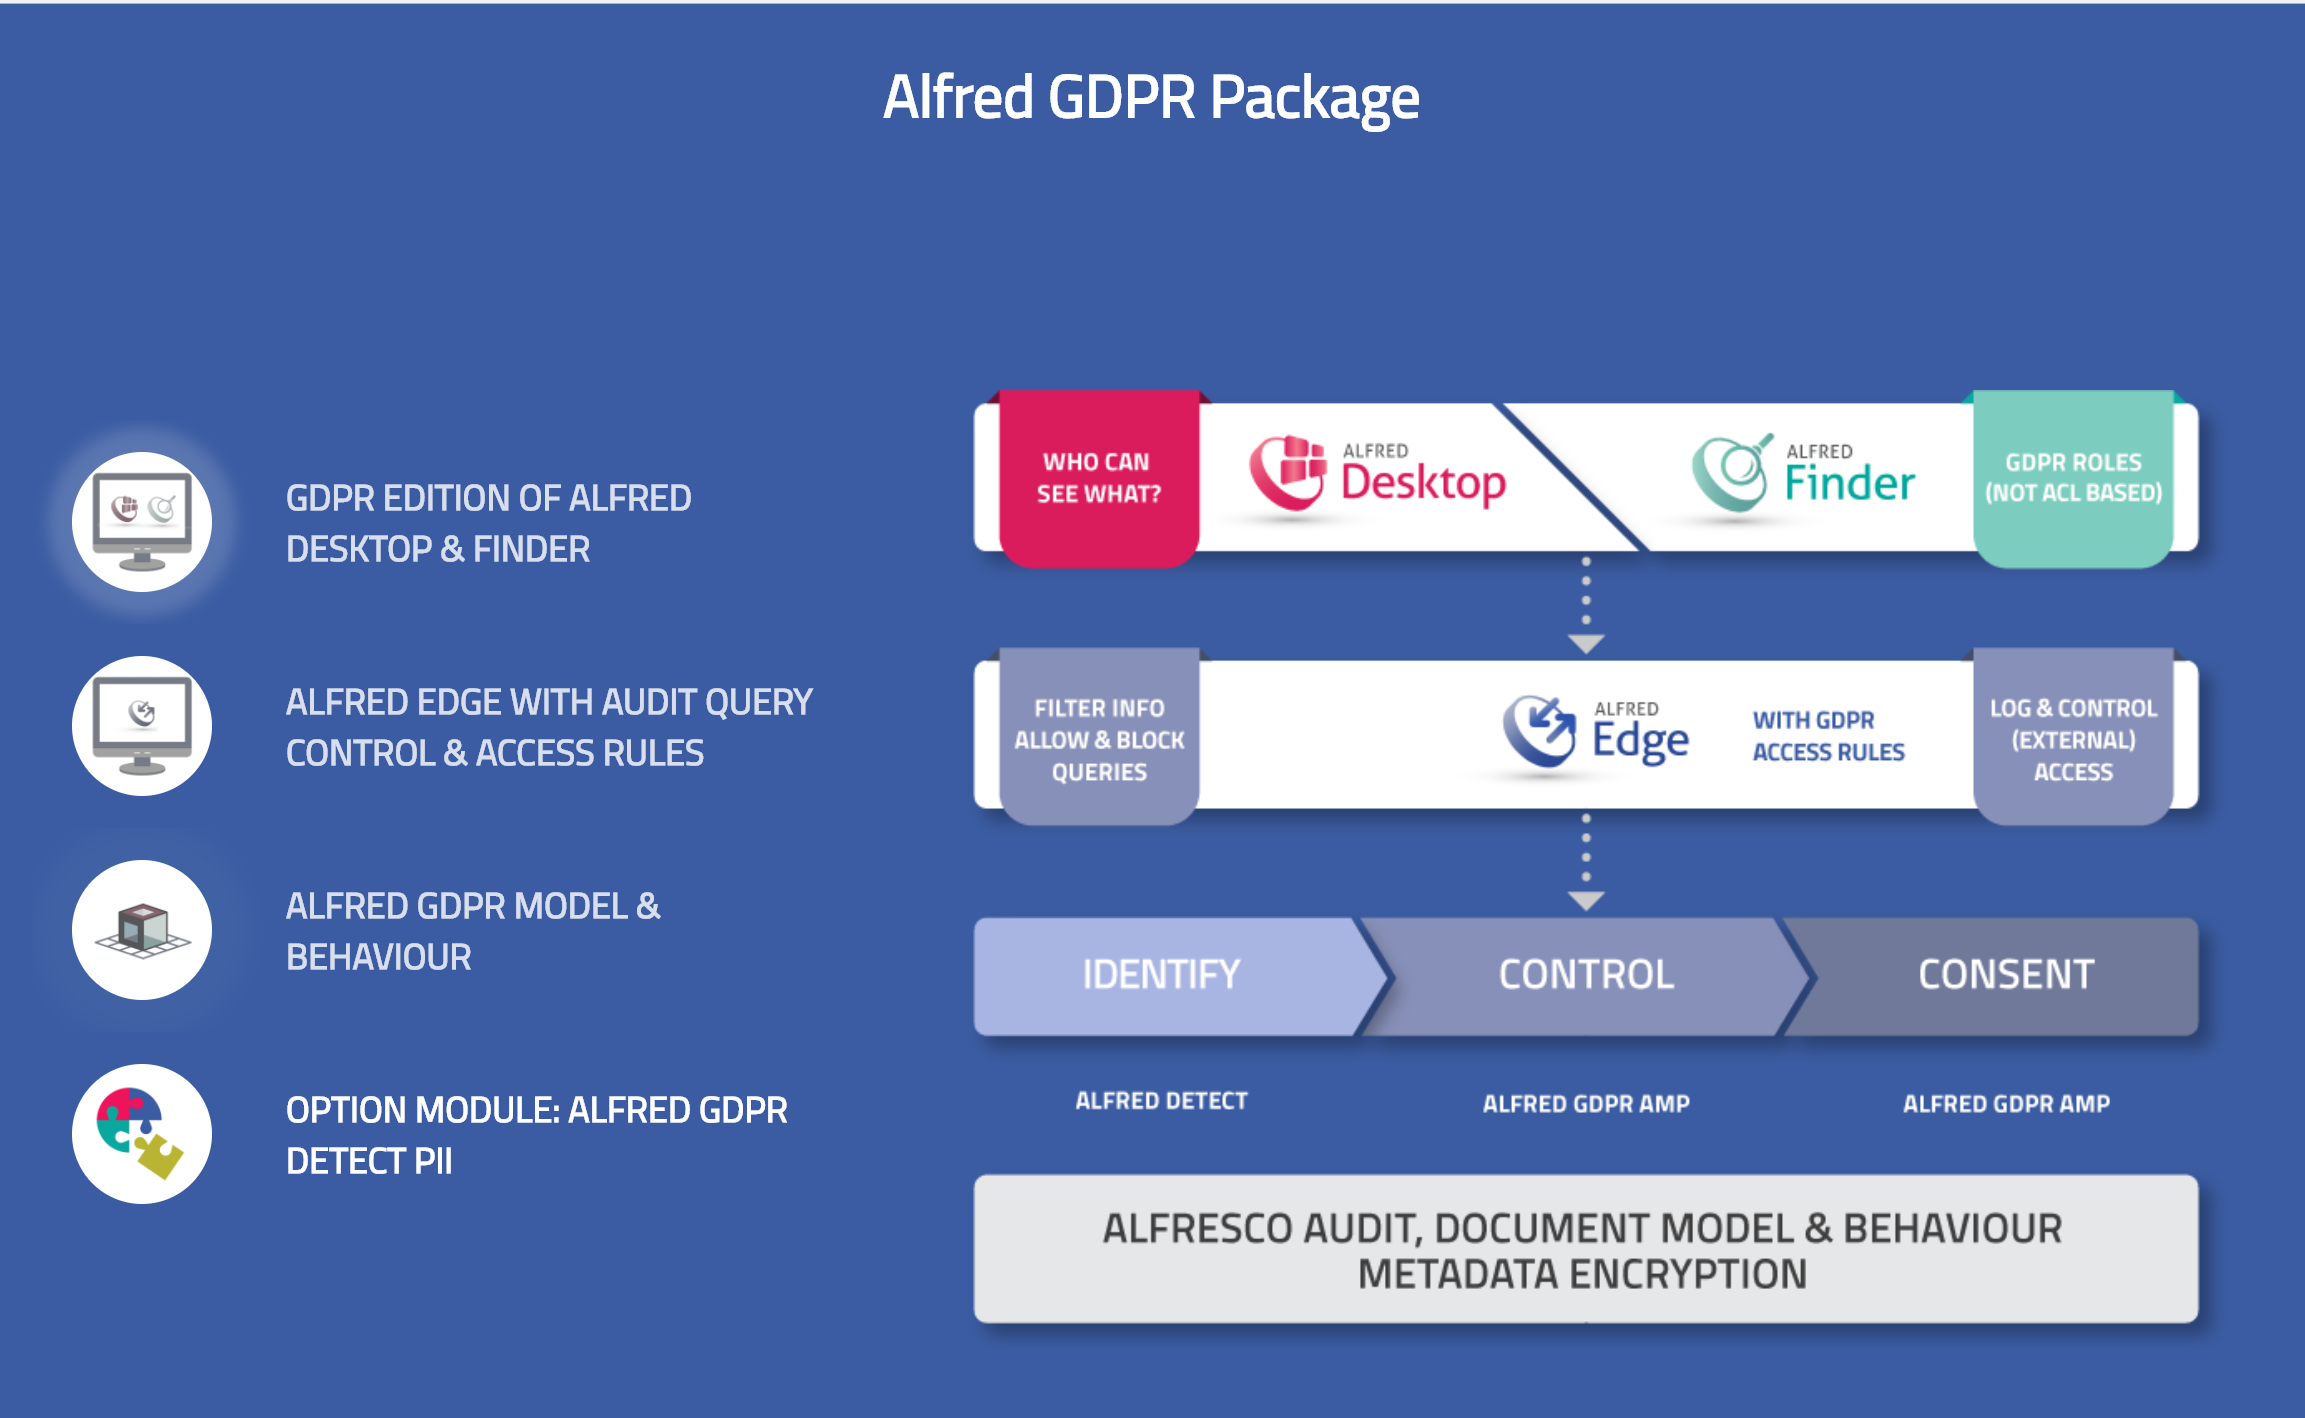 GDPR Solution Xenit, Alfresco